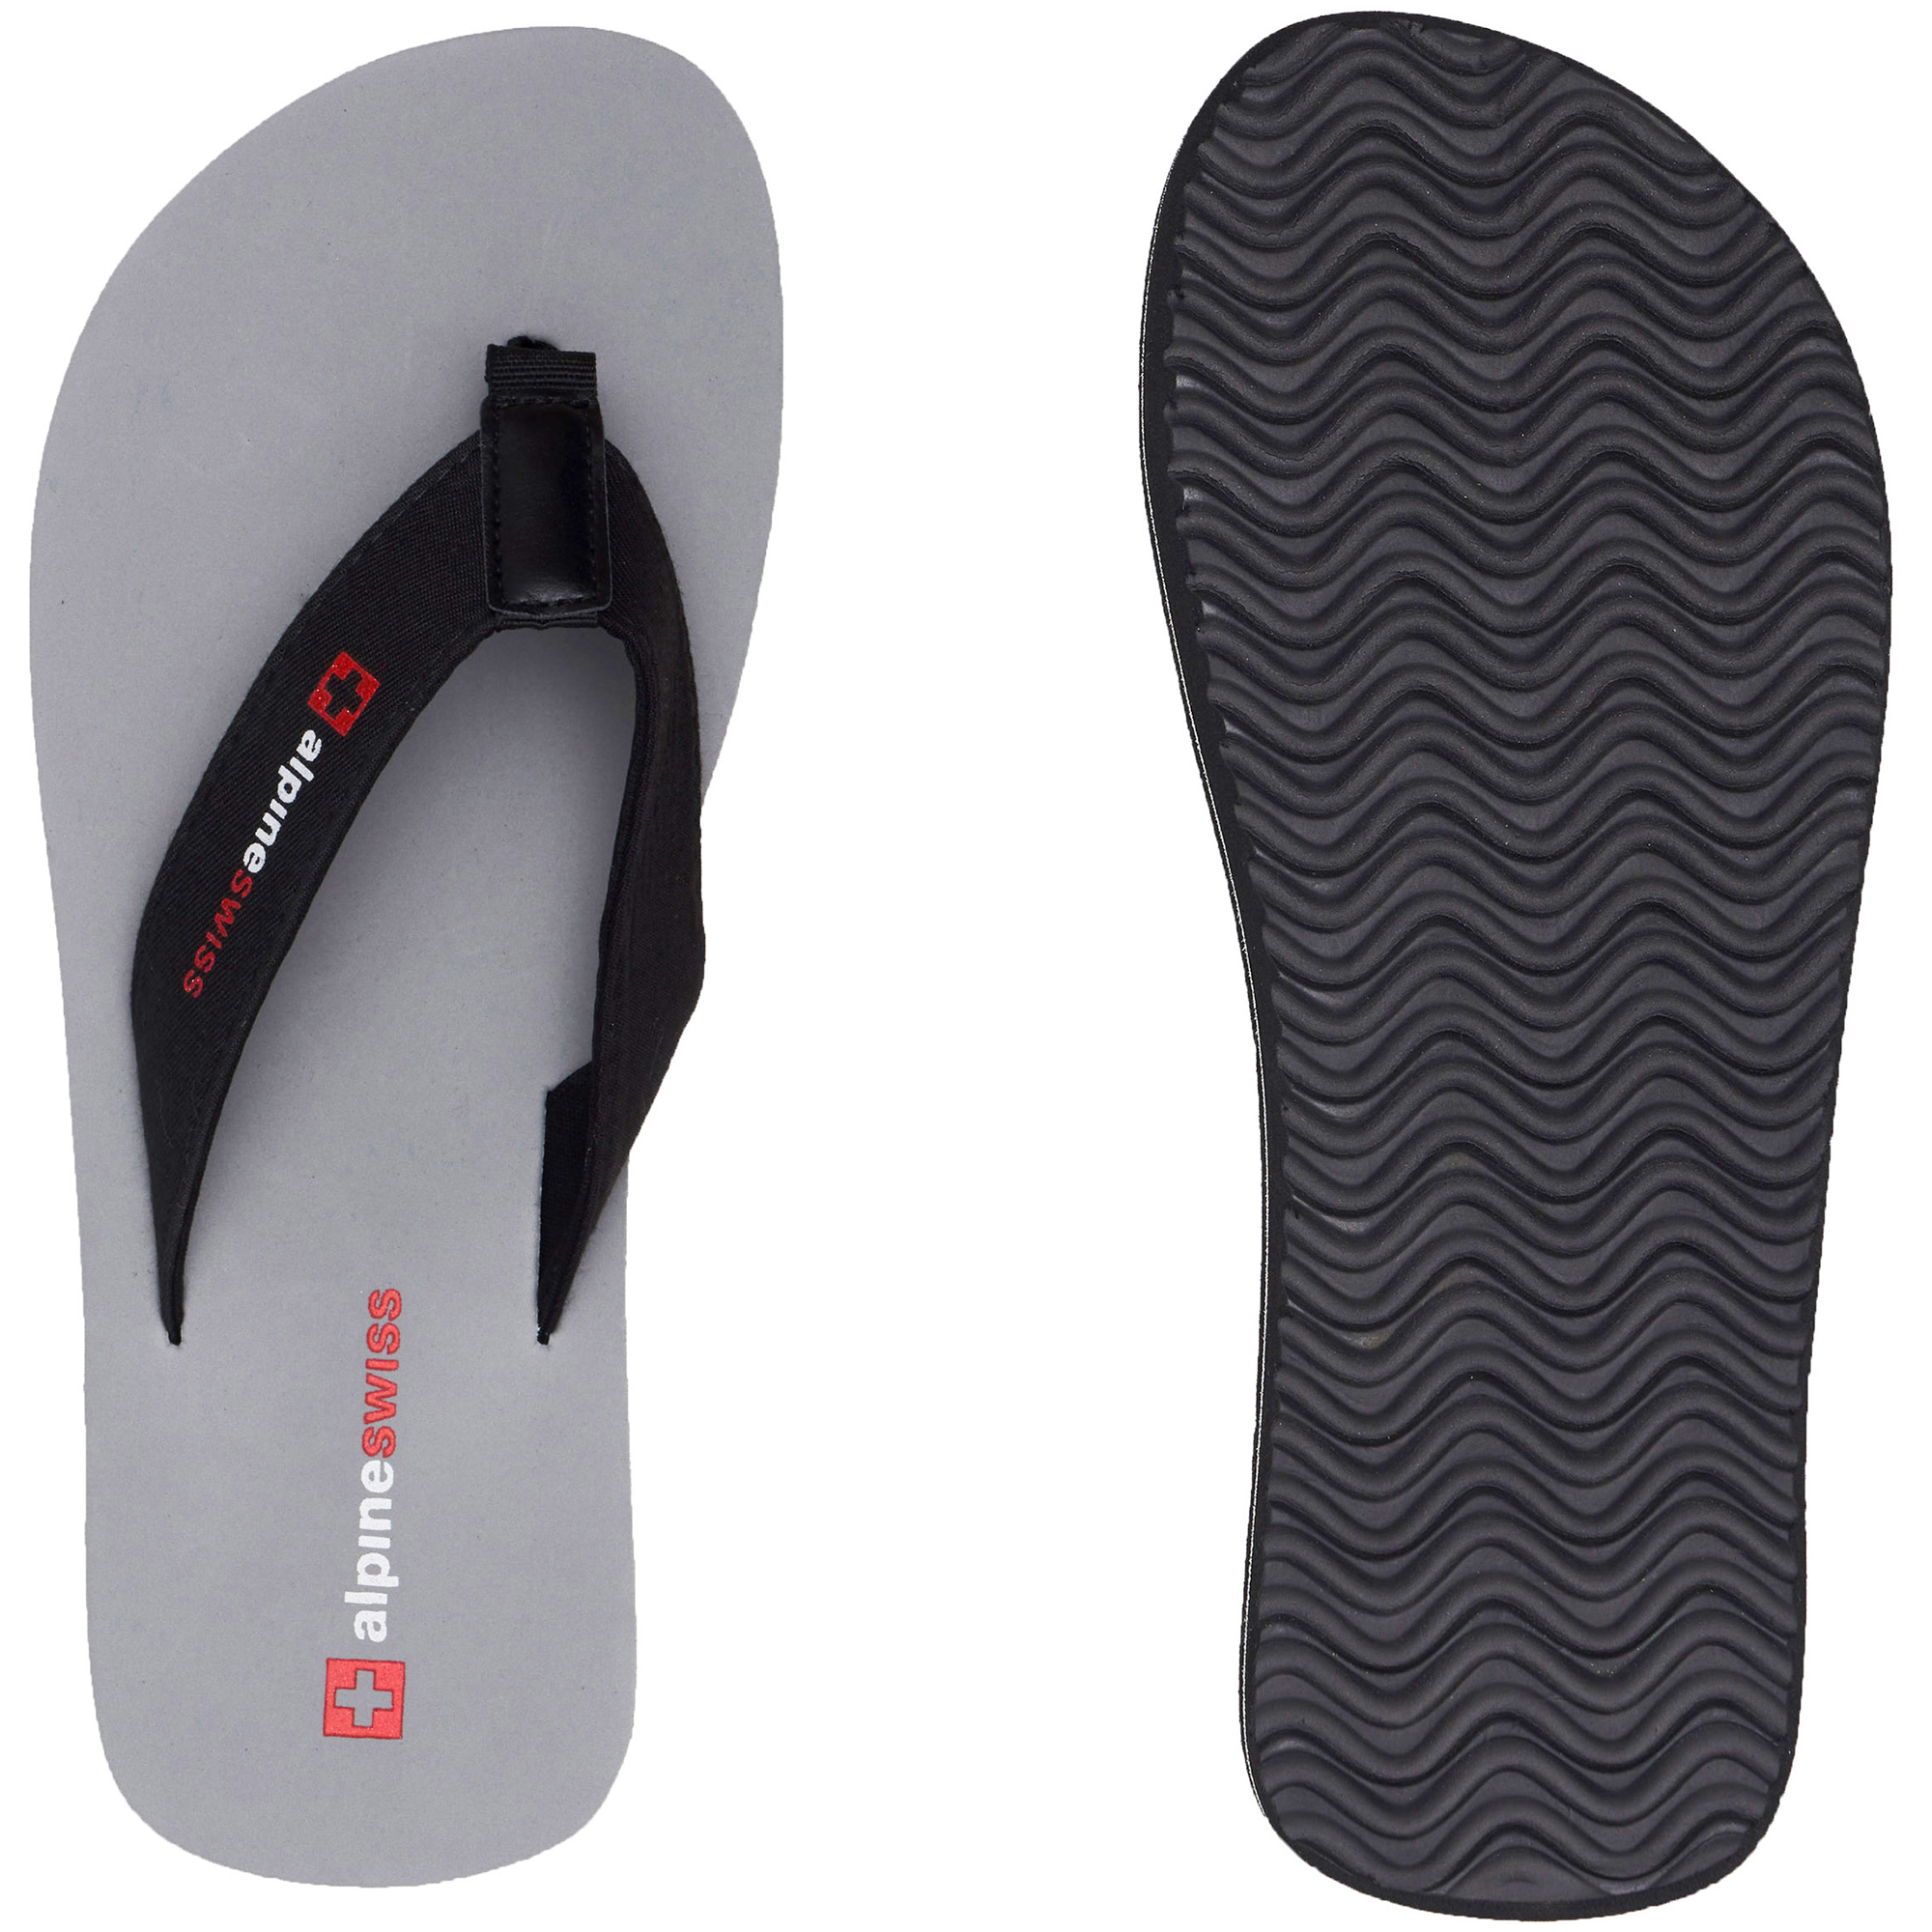 Alpine-Swiss-Mens-Flip-Flops-Beach-Sandals-Lightweight-EVA-Sole-Comfort-Thongs thumbnail 51